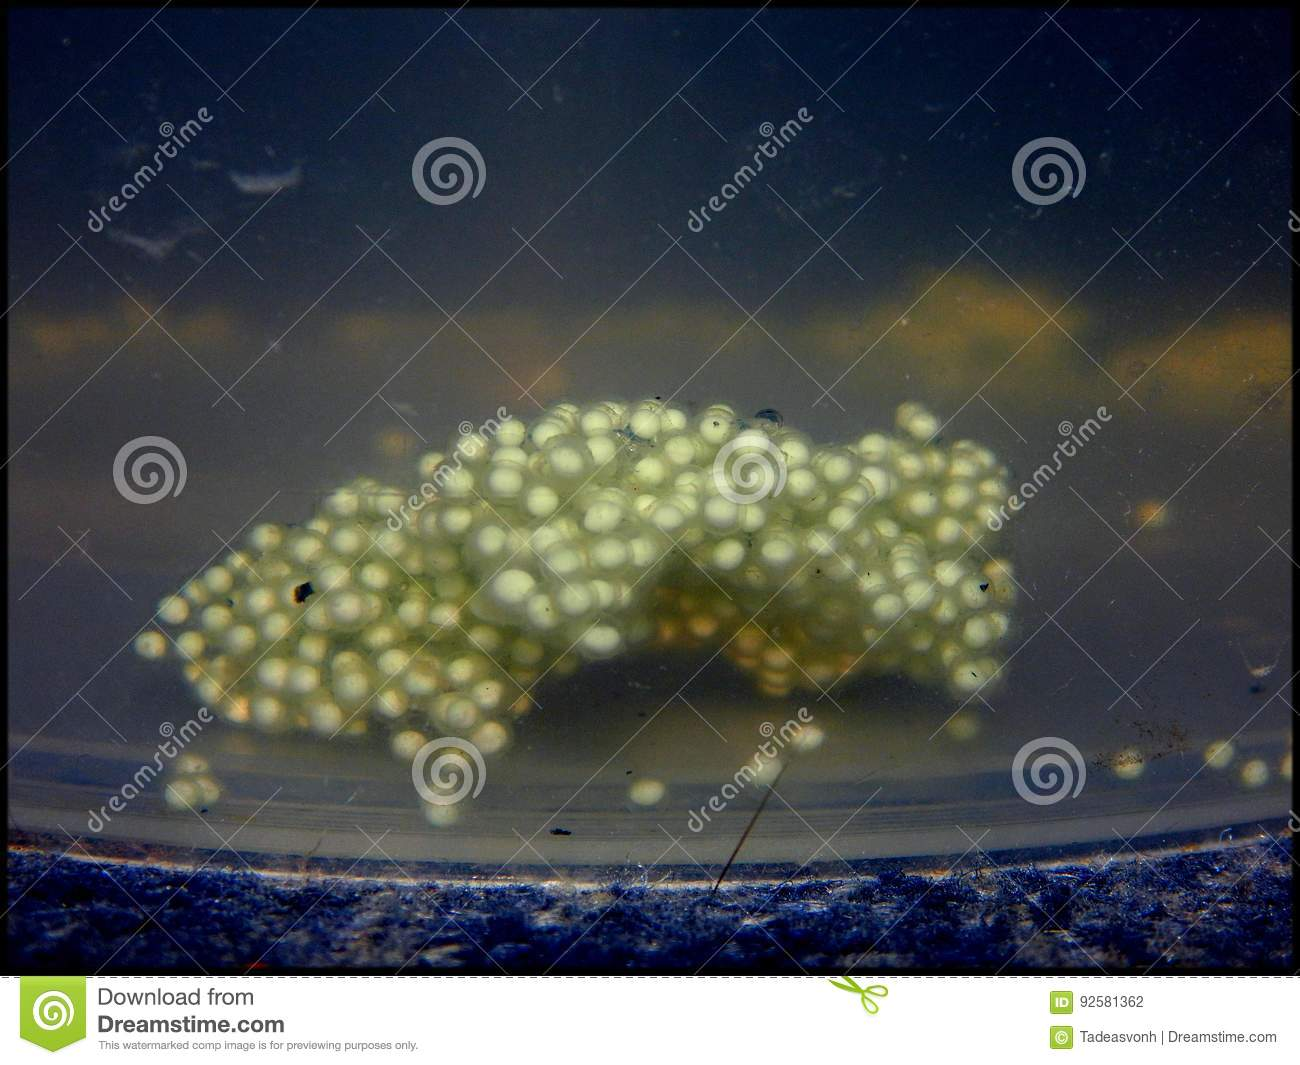 African clawed frog eggs stock photo  Image of clear - 92581362